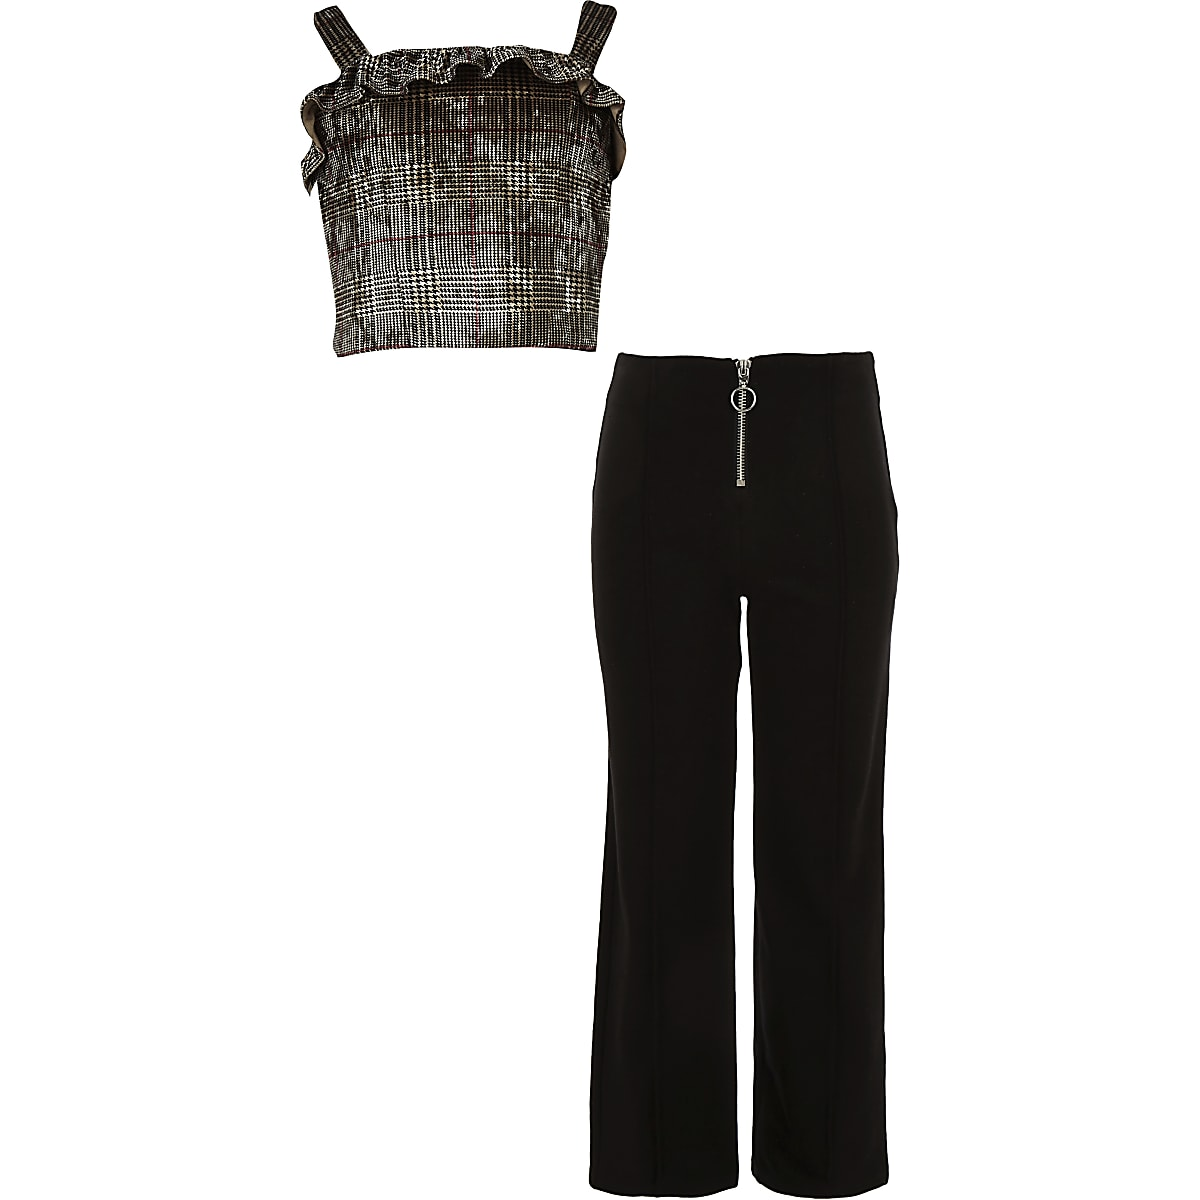 Girls brown check top and trouser outfit